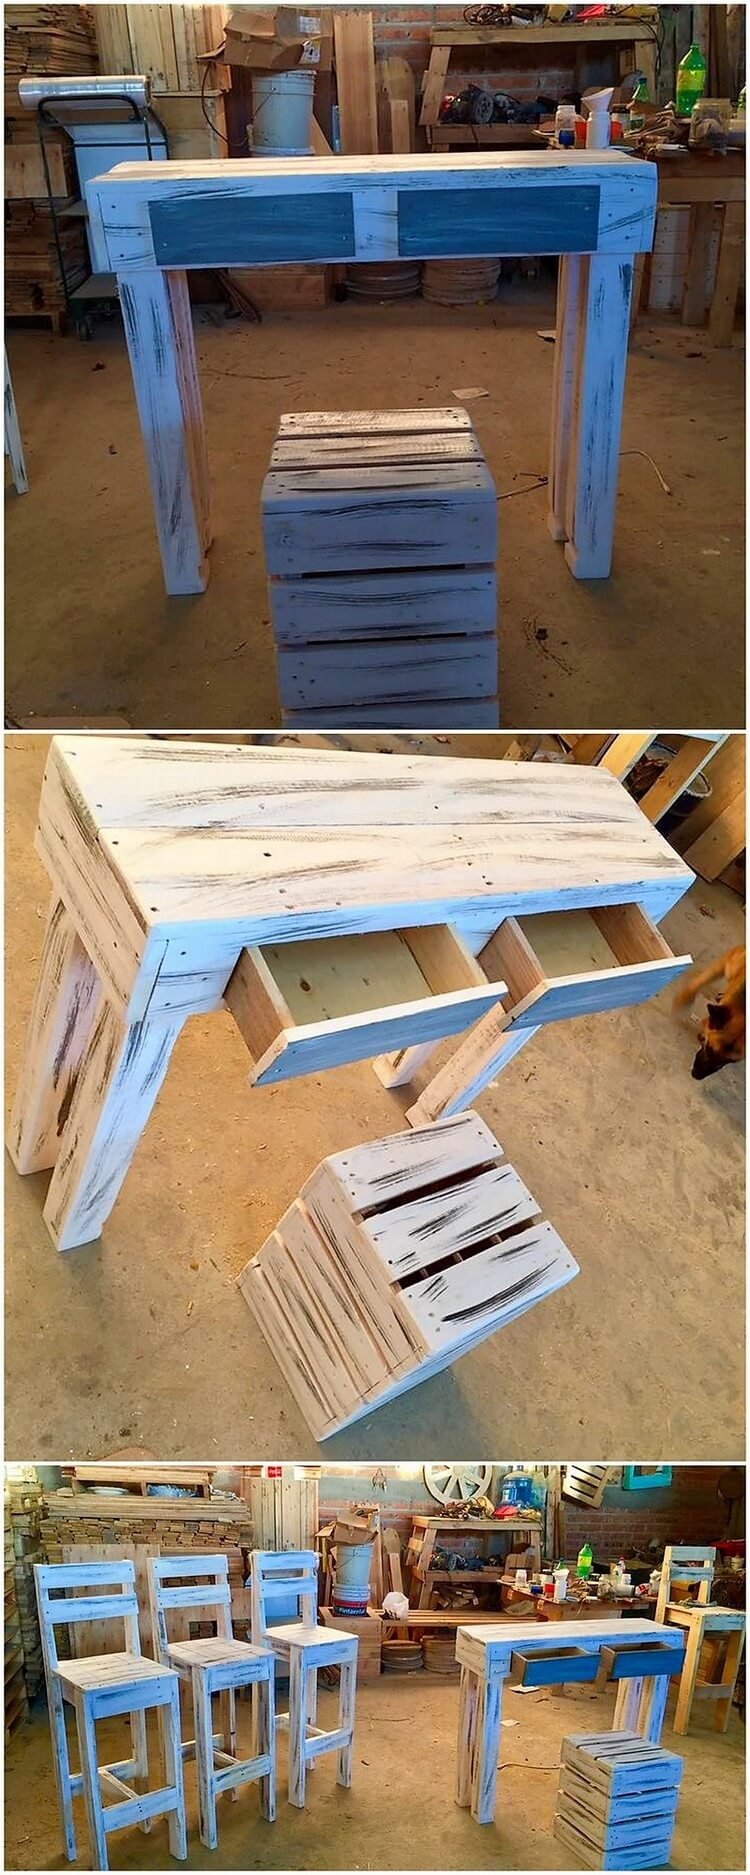 Pallet Study Table with Drawers and Stool